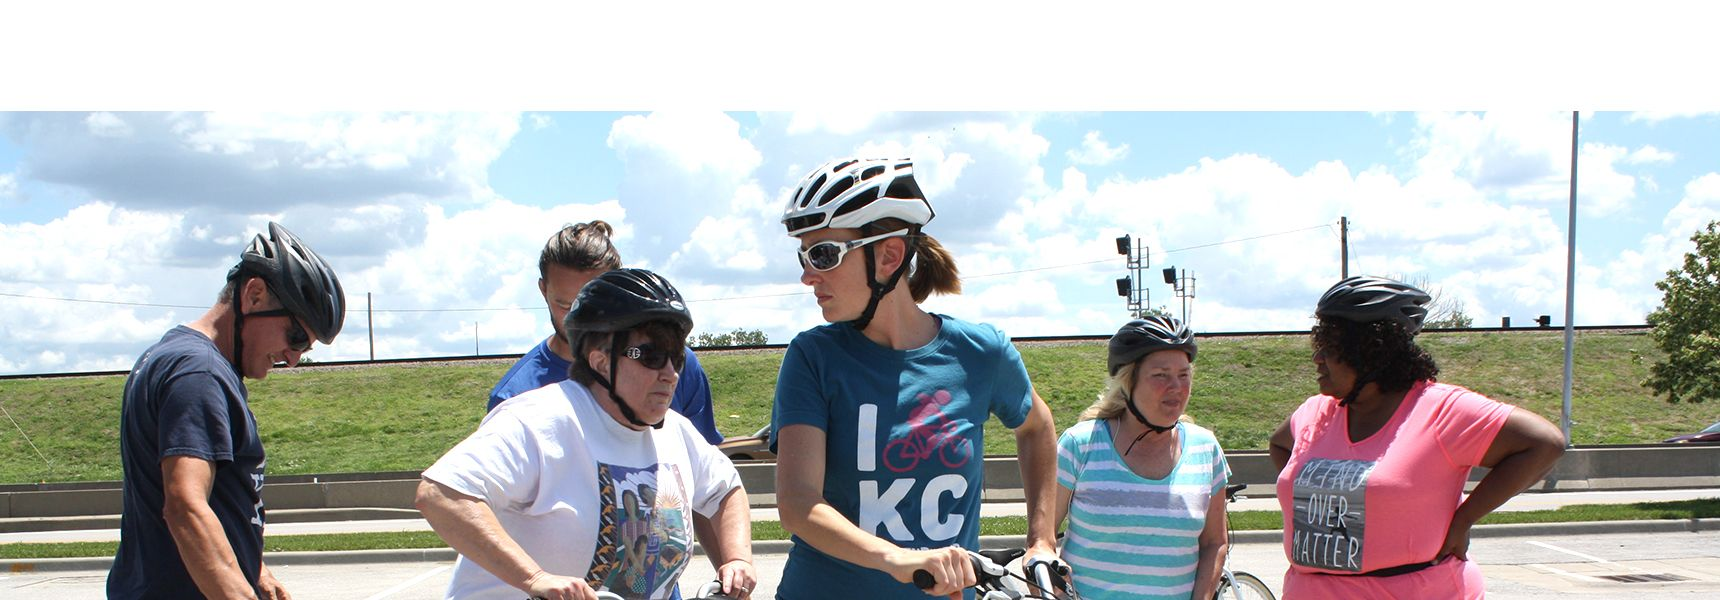 BLVE members get ready to ride tandem bicycles